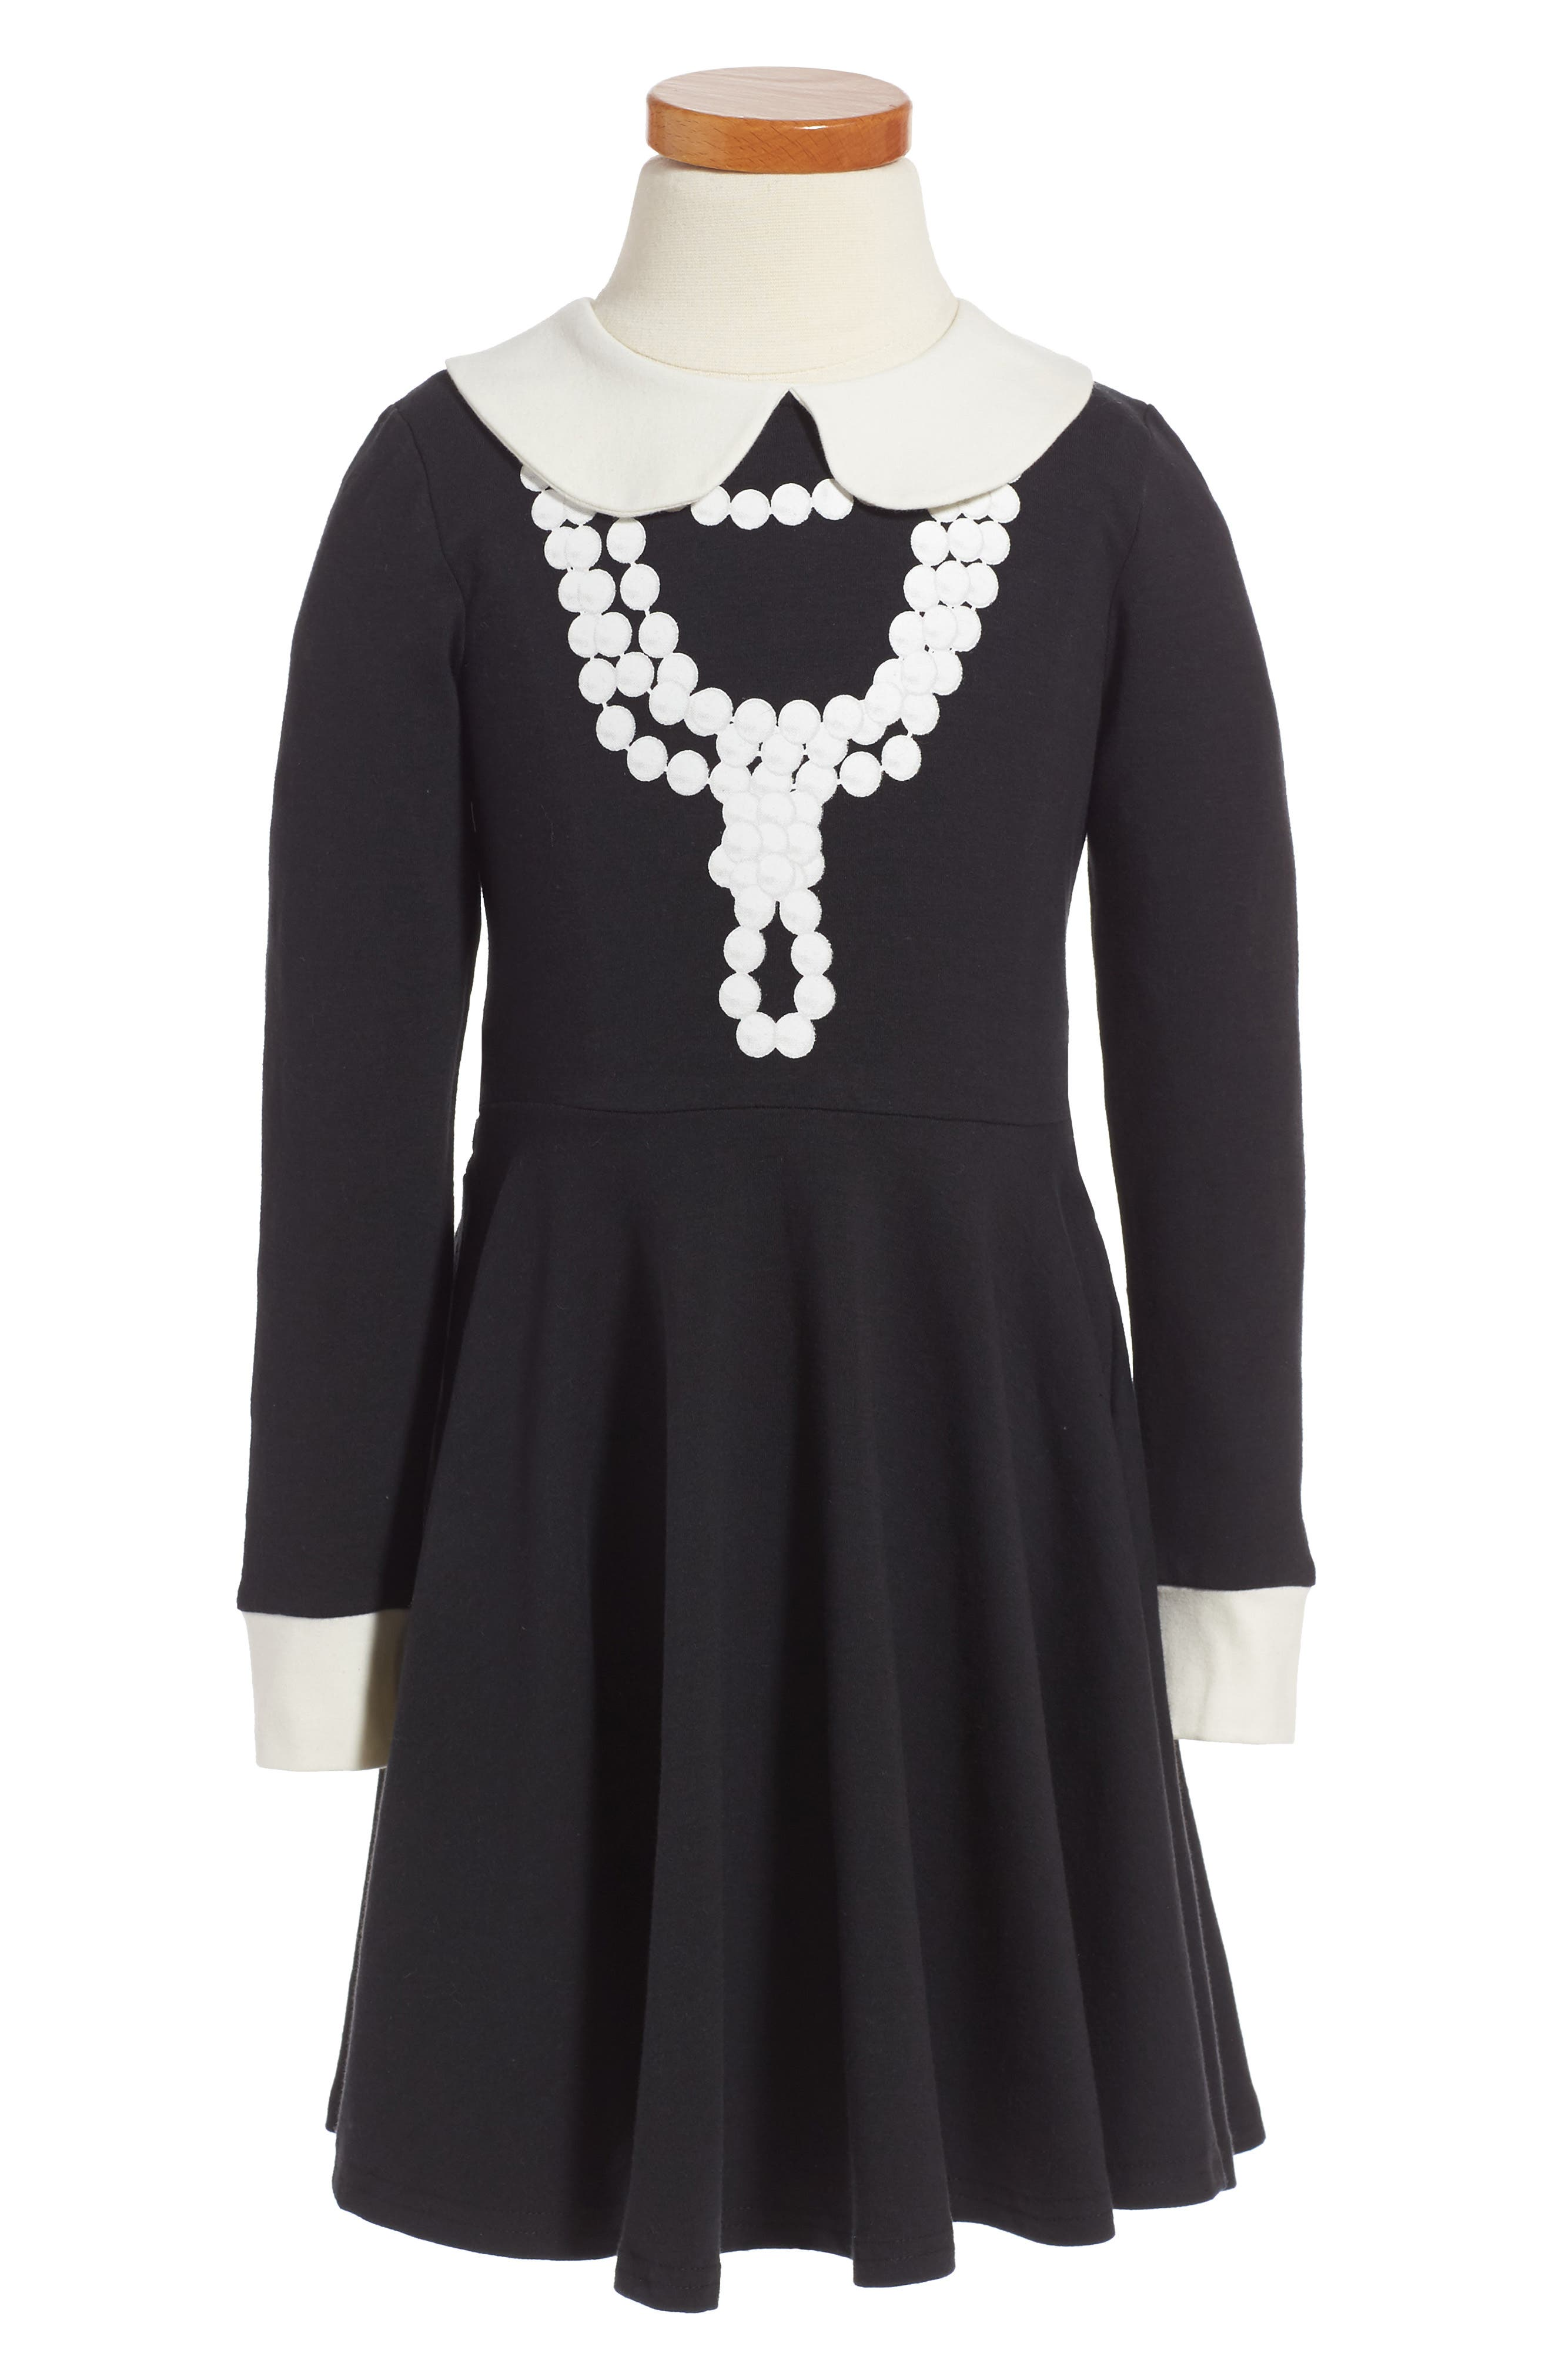 Main Image - Rock Your Kid Coco Fit & Flare Dress (Toddler Girls & Little Girls)